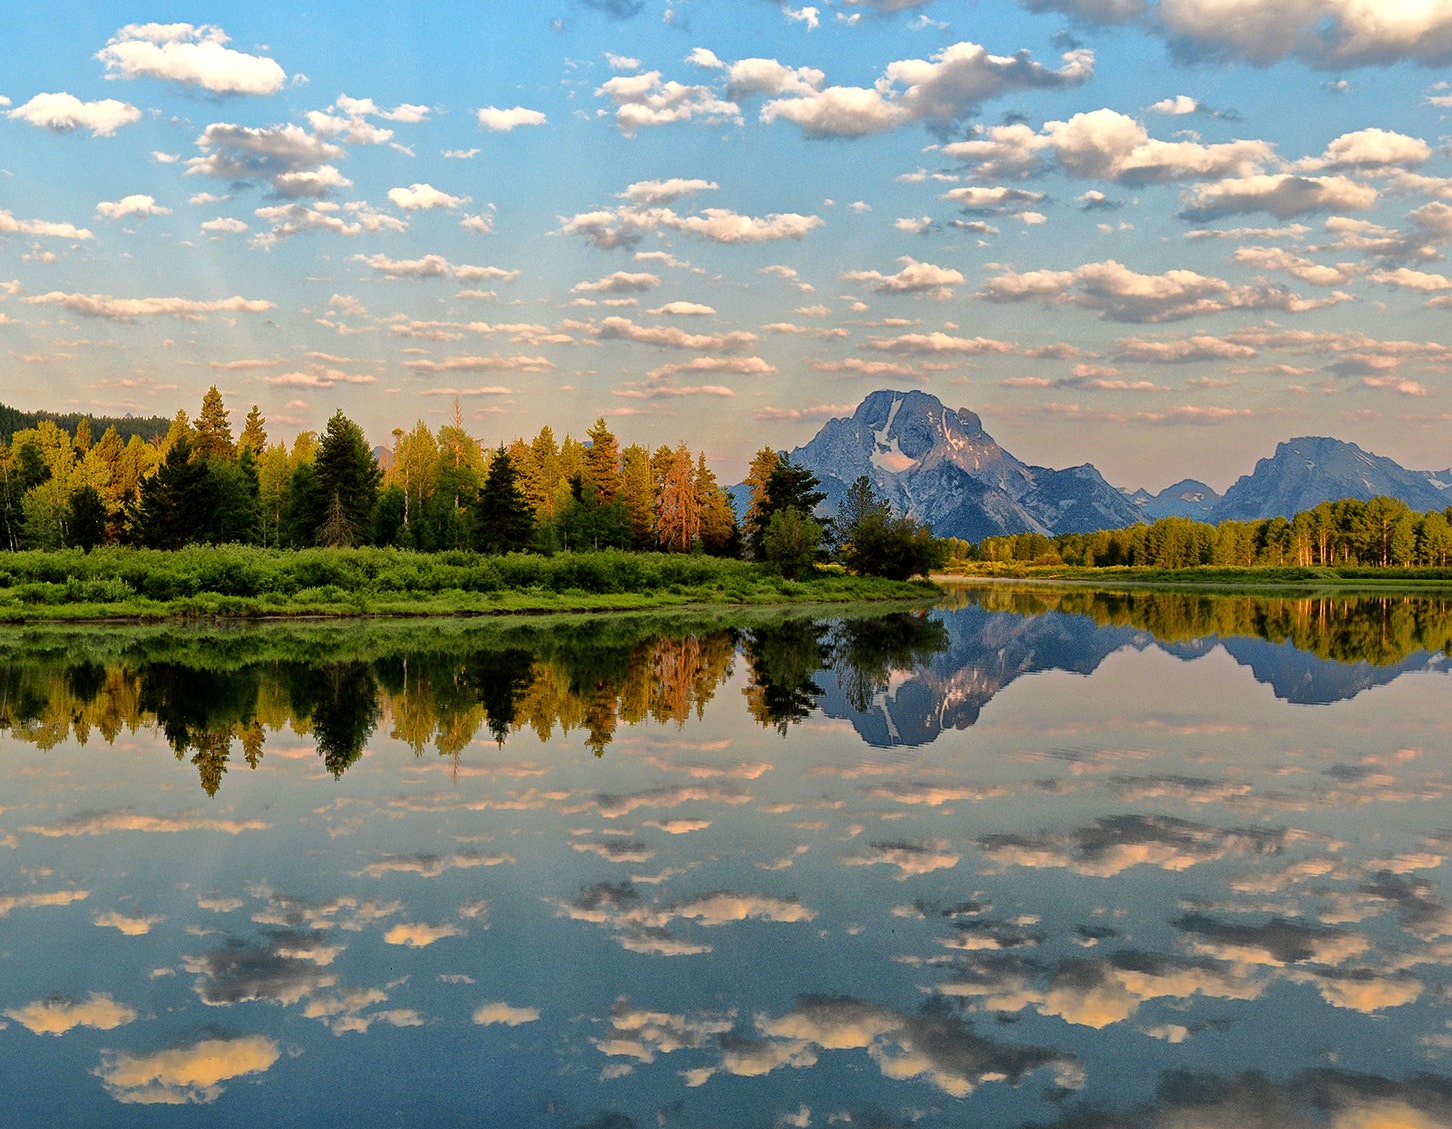 Photograph Morning Clouds at Oxbow by Jeff Clow on 500px